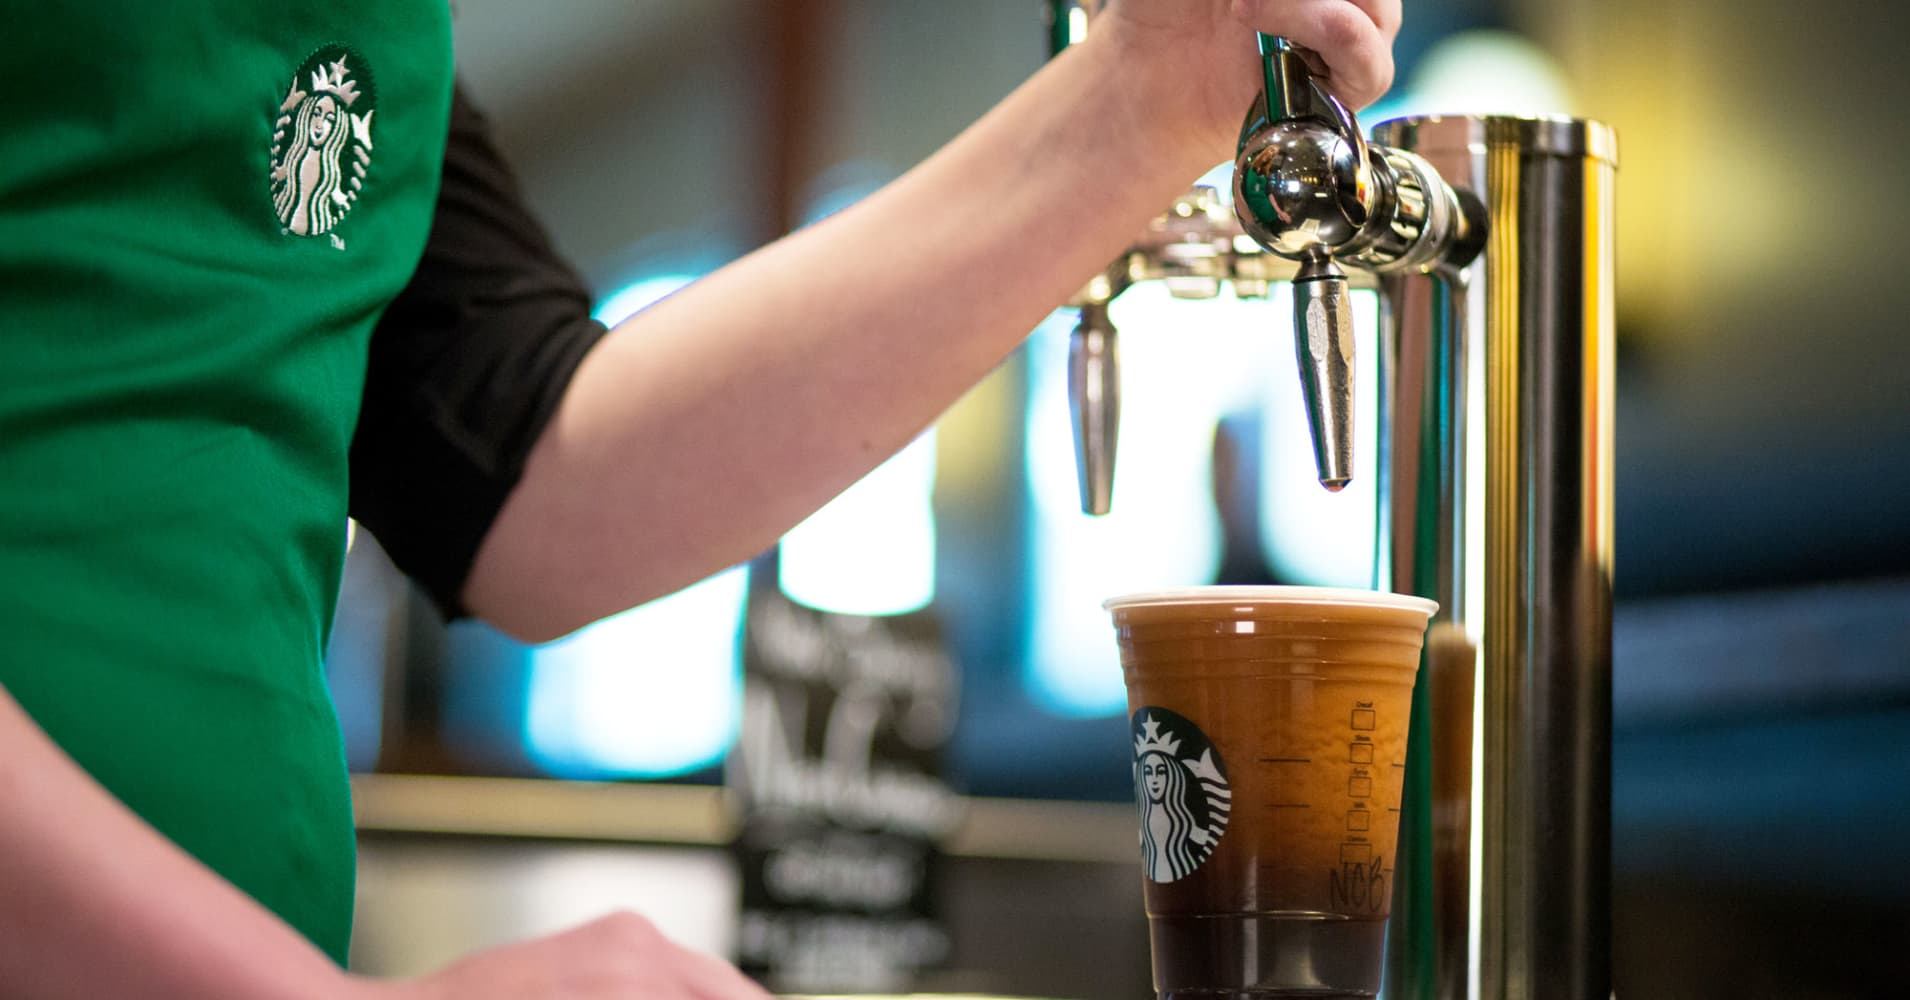 Starbucks to build 10,000 'greener' stores by 2025